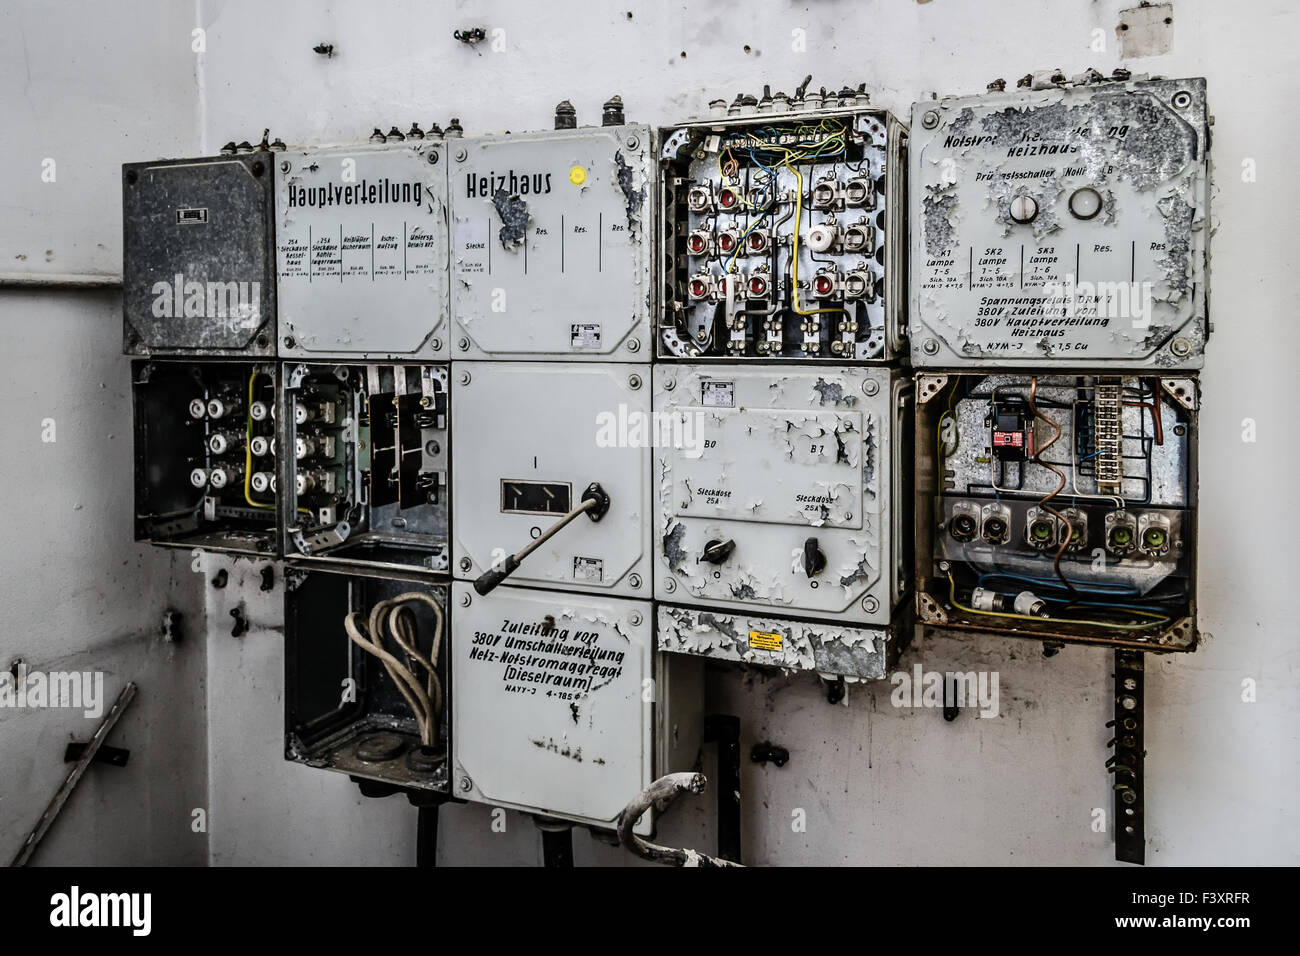 old fuse box F3XRFR old fuse box stock photo, royalty free image 88485035 alamy old fuse box diagram at webbmarketing.co